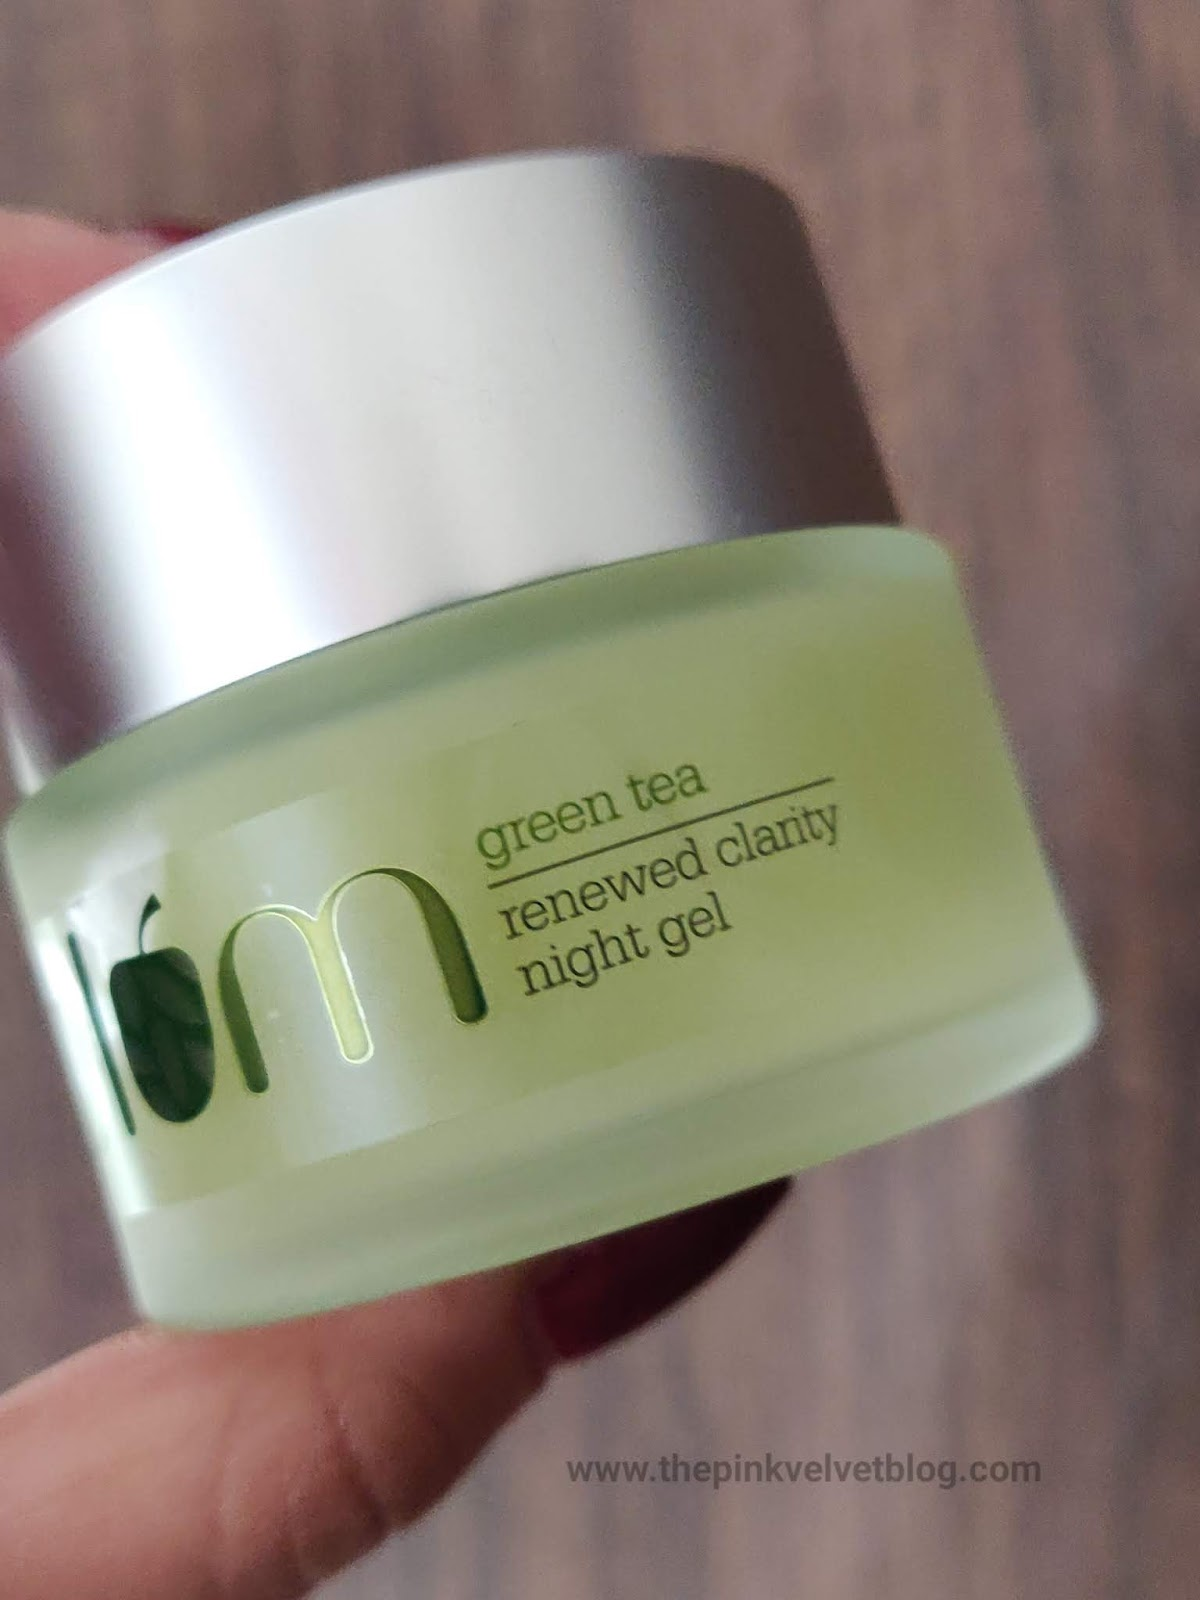 Plum Goodness Green Tea Face Mist and Clarity Night Gel - Review